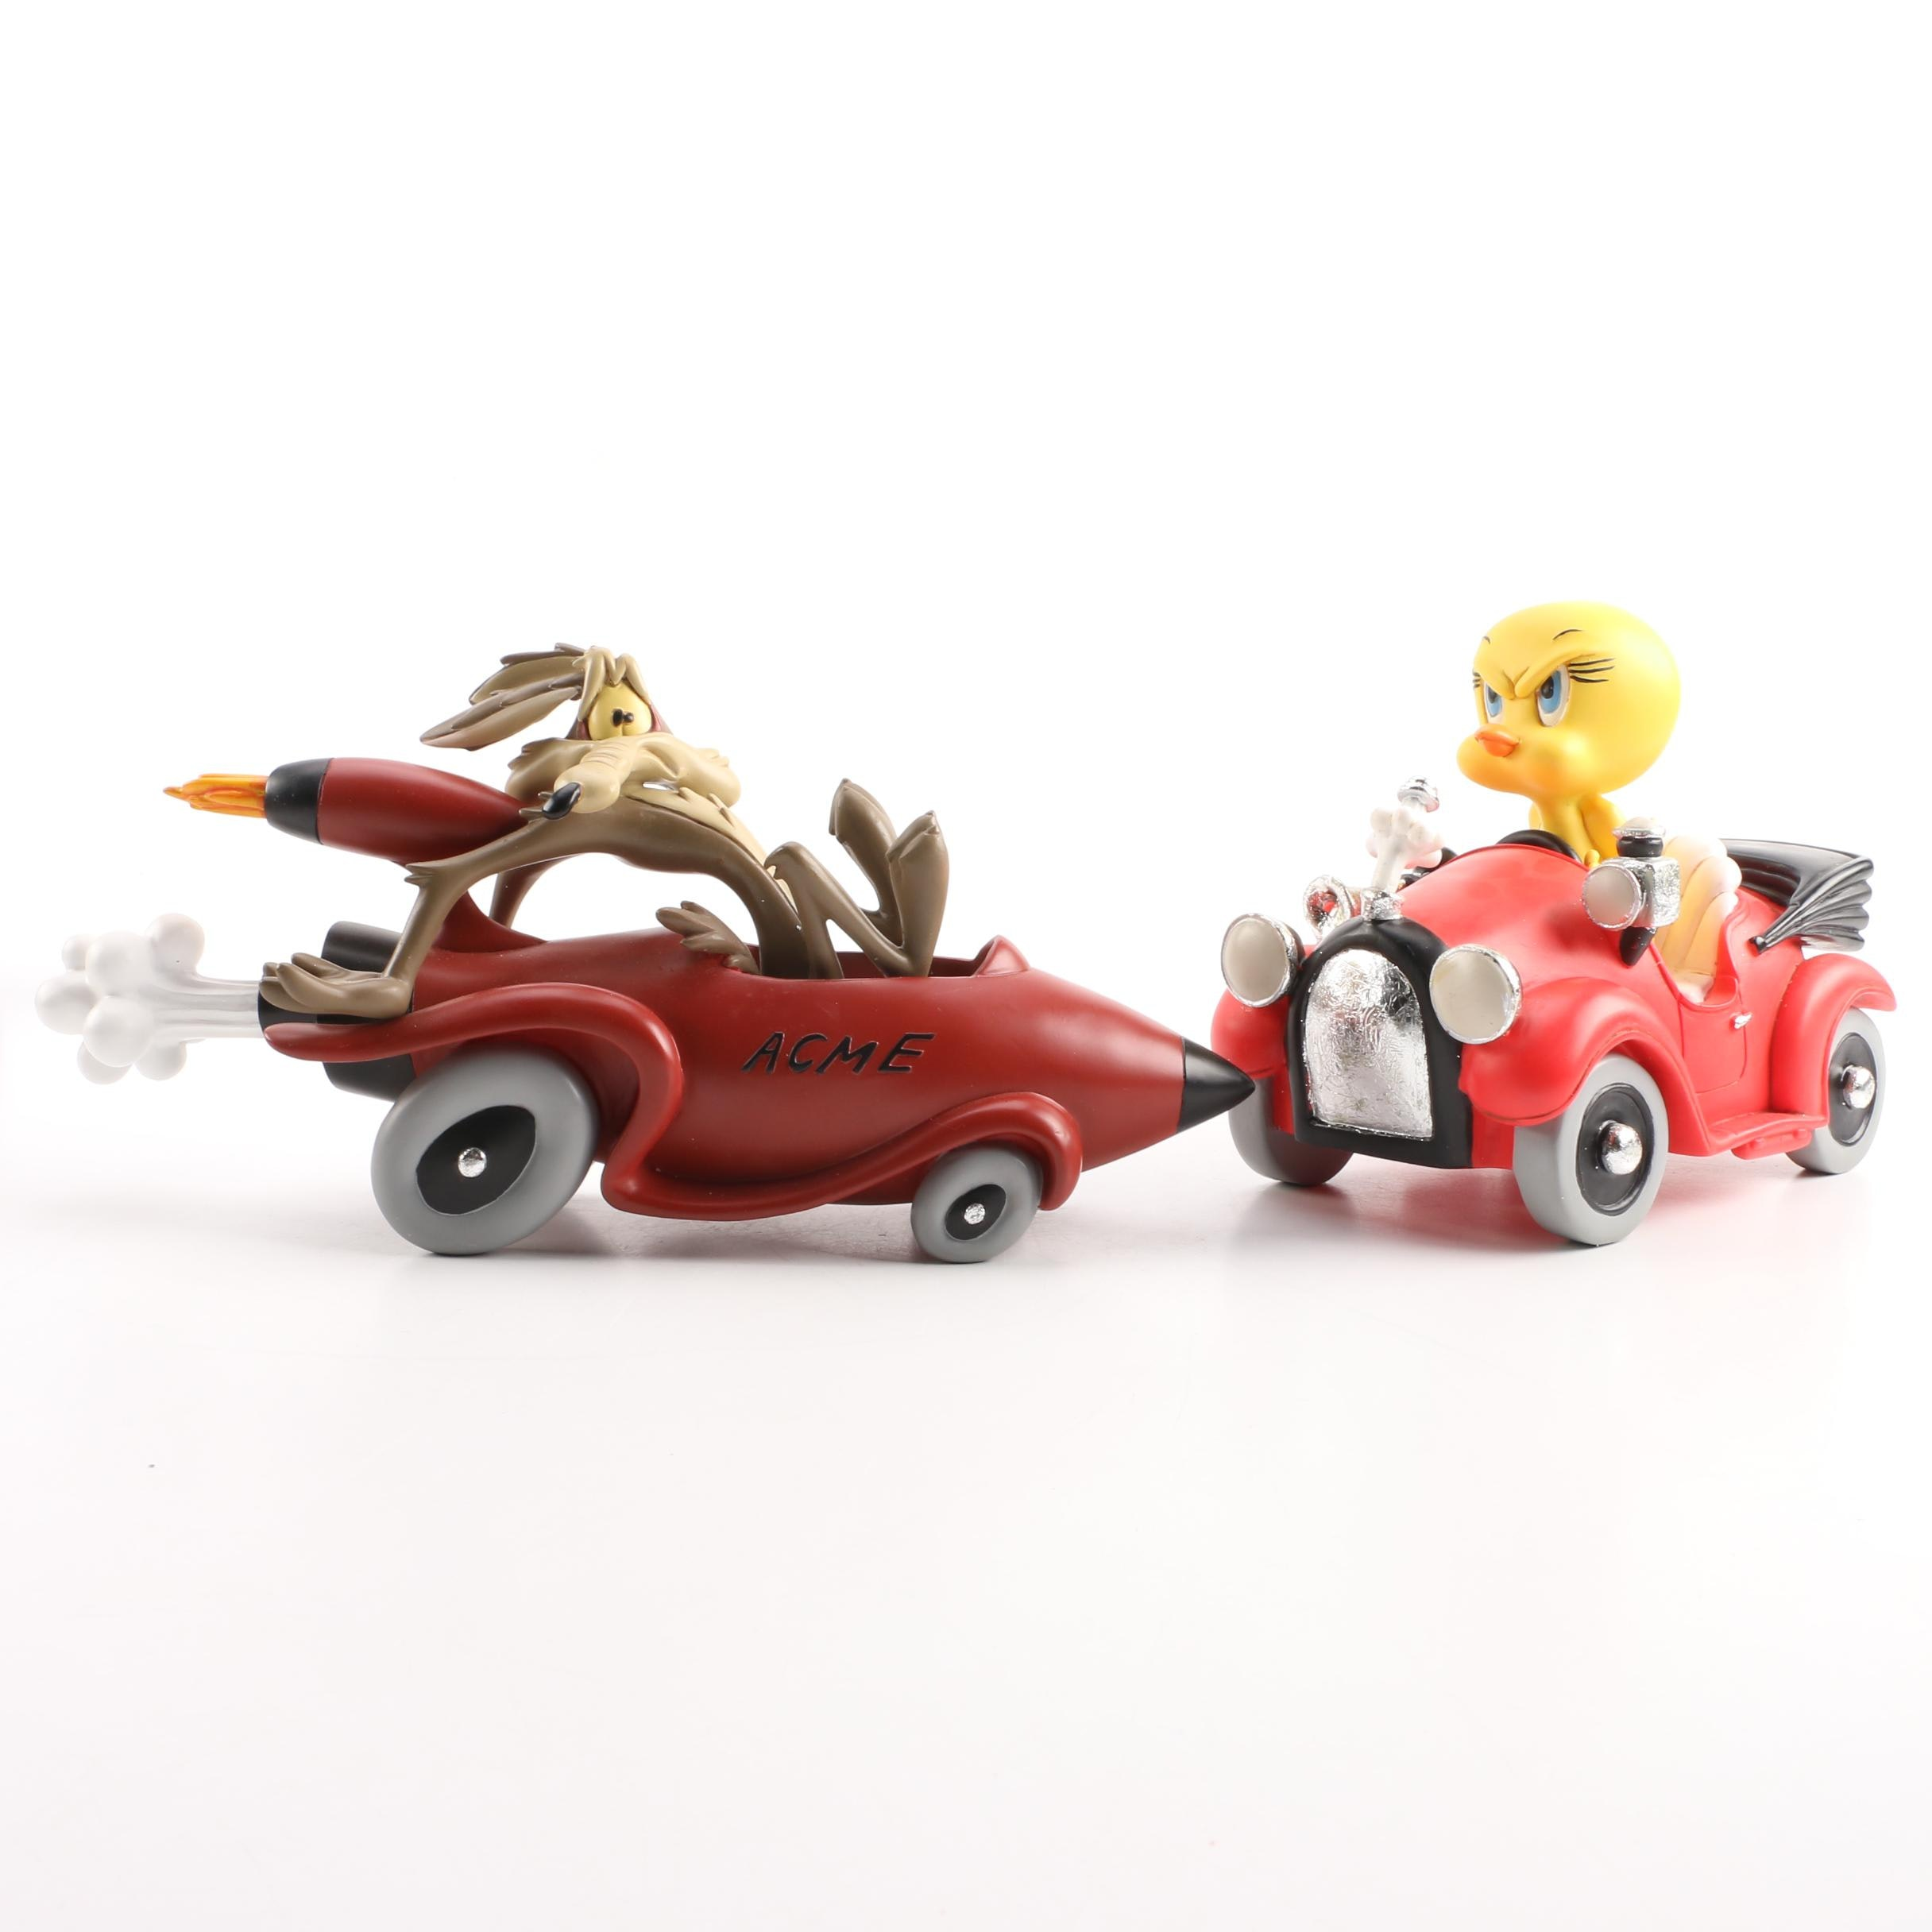 Resin Warner Brothers Figurines Featuring Tweety Bird and Wile E. Coyote